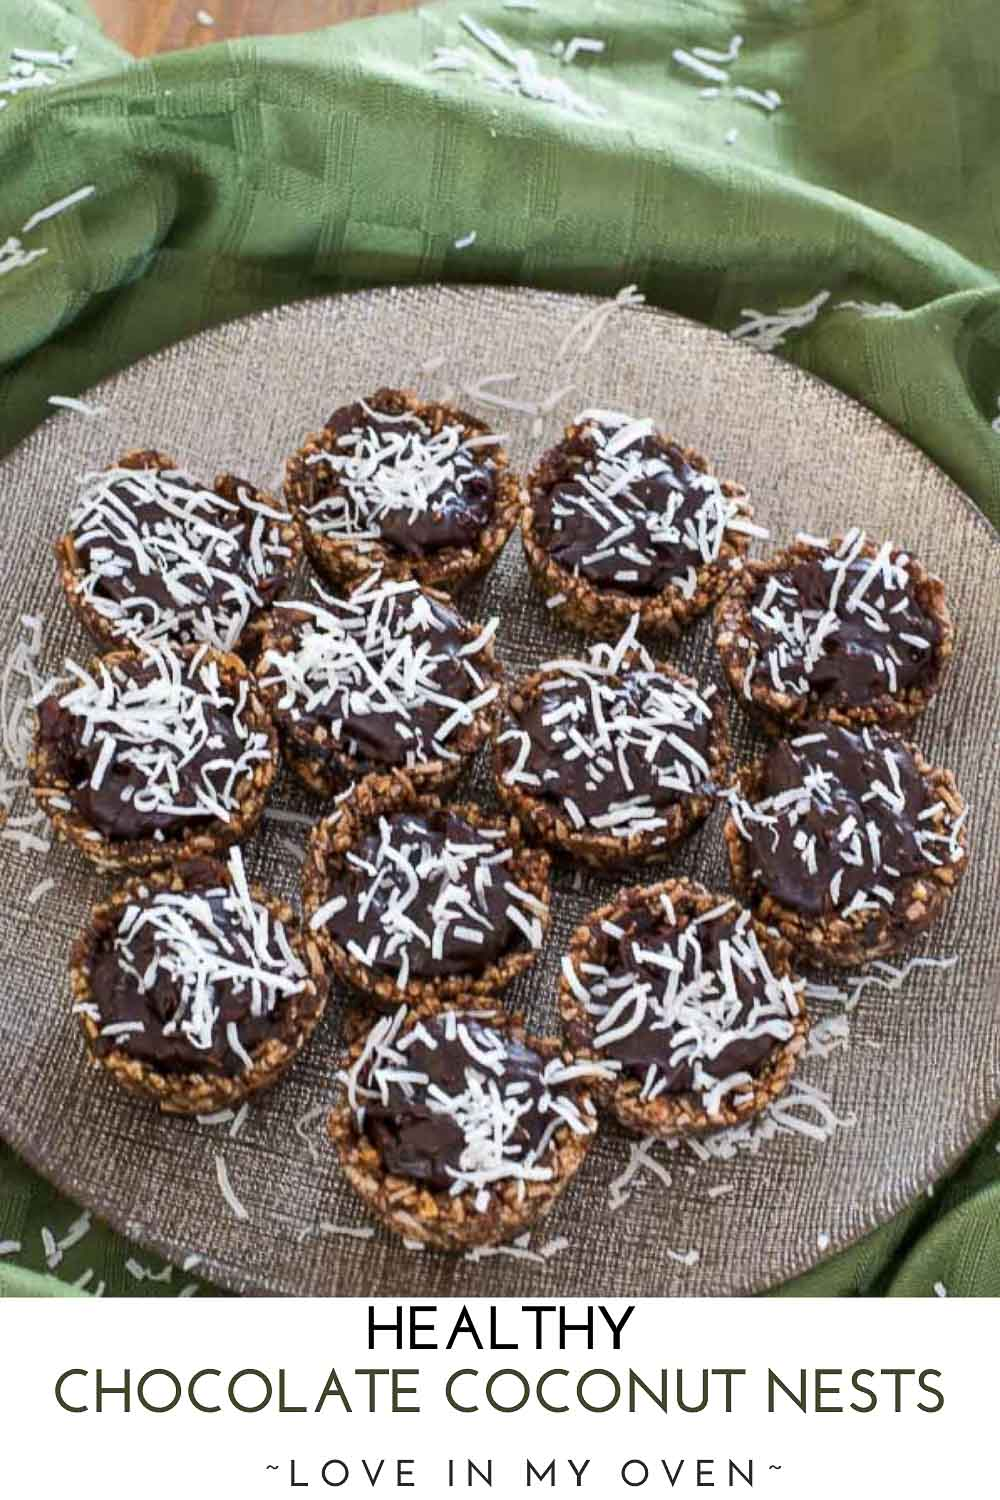 Healthy Chocolate Coconut Nests